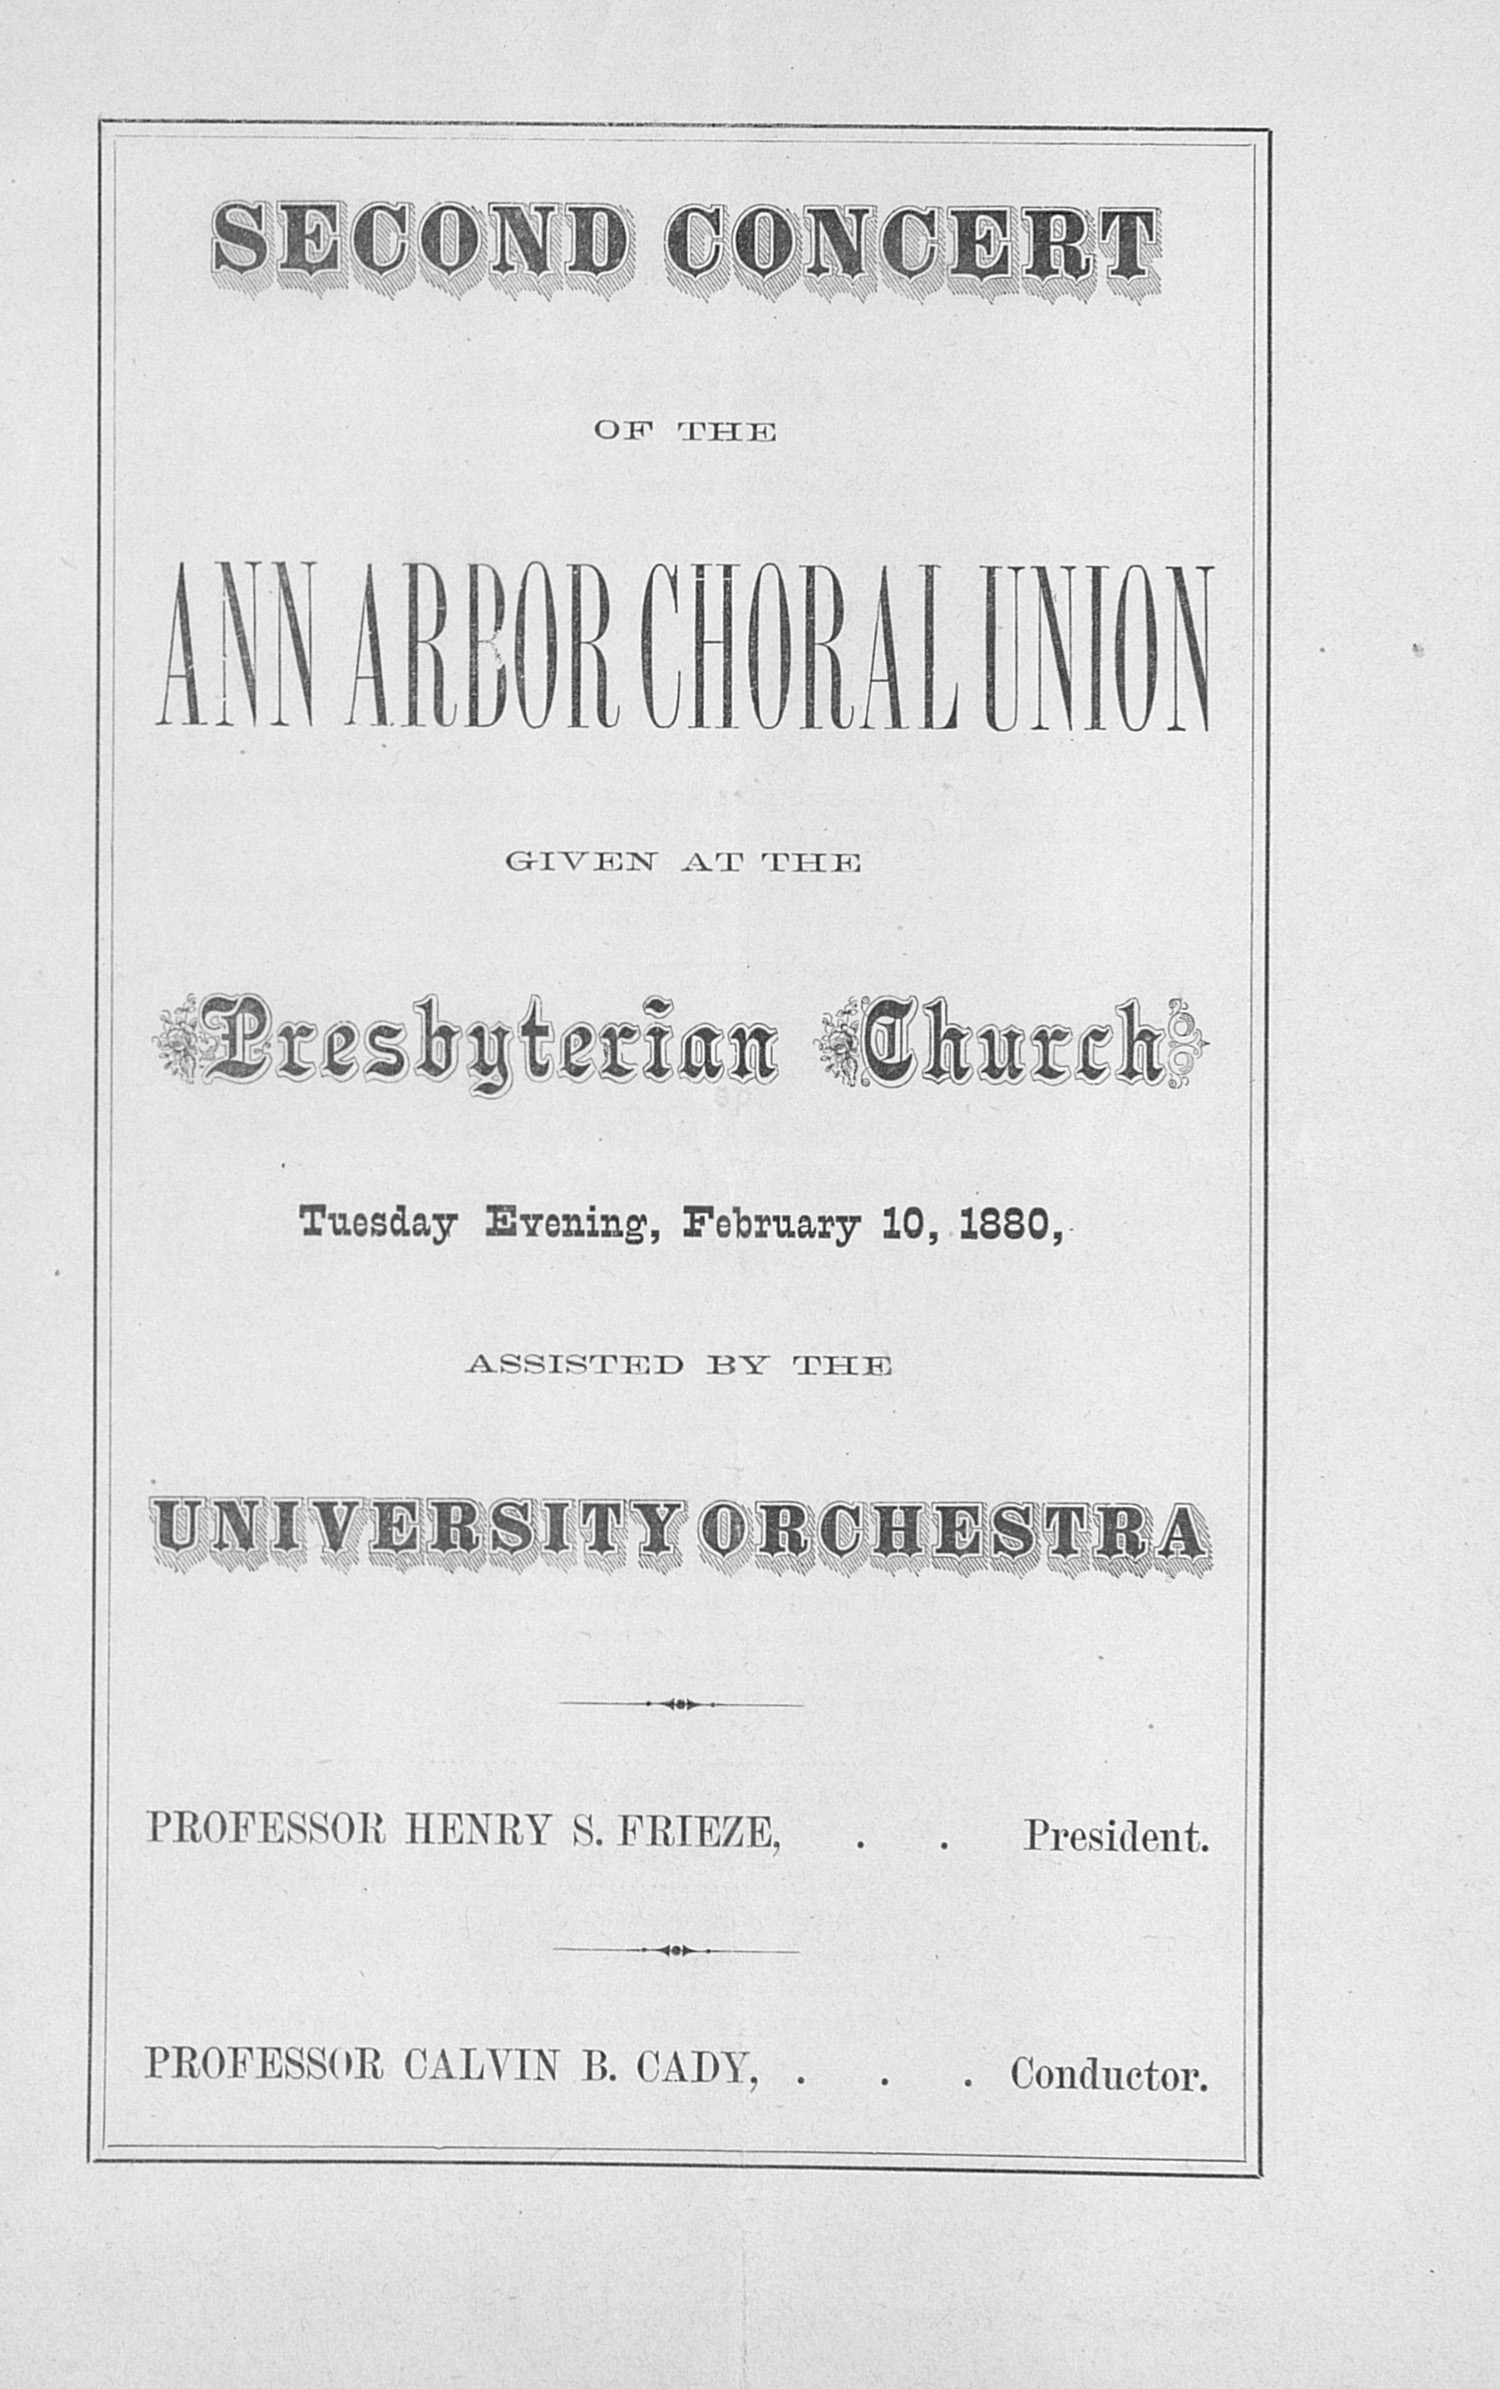 UMS Concert Program, February 10, 1880: Ann Arbor Choral Union --  image